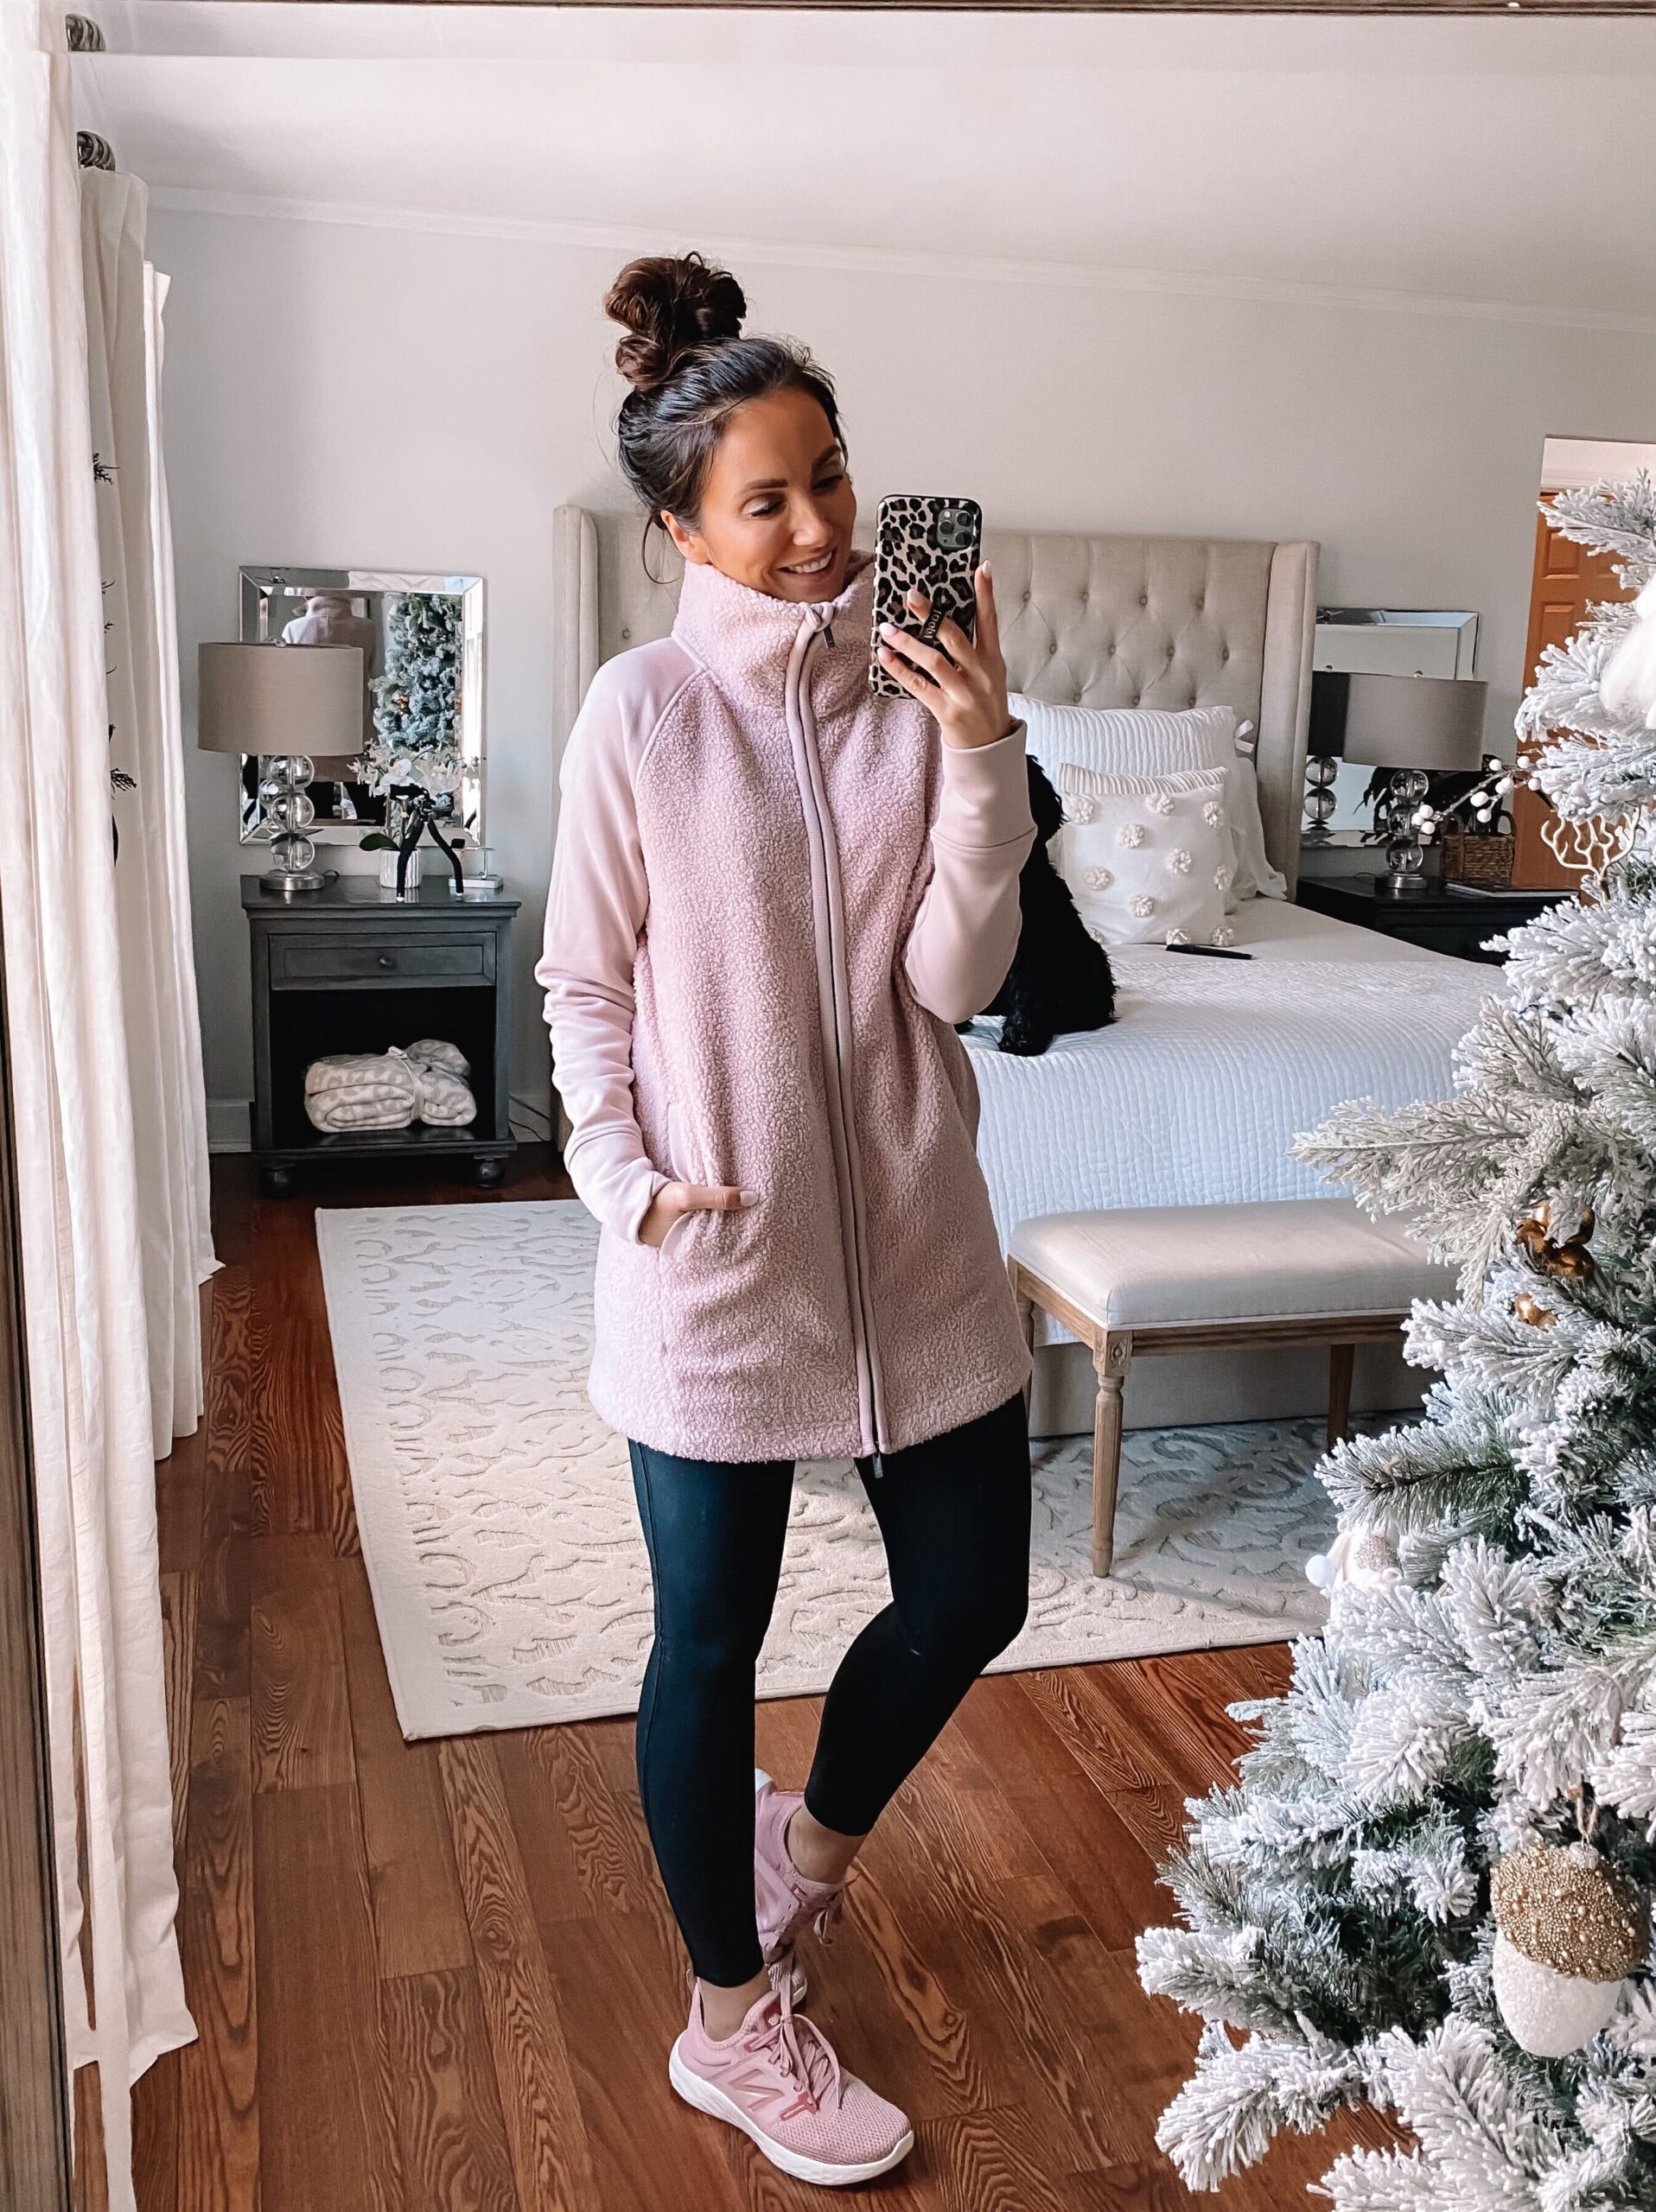 target style, target sherpa, athleisure winter style